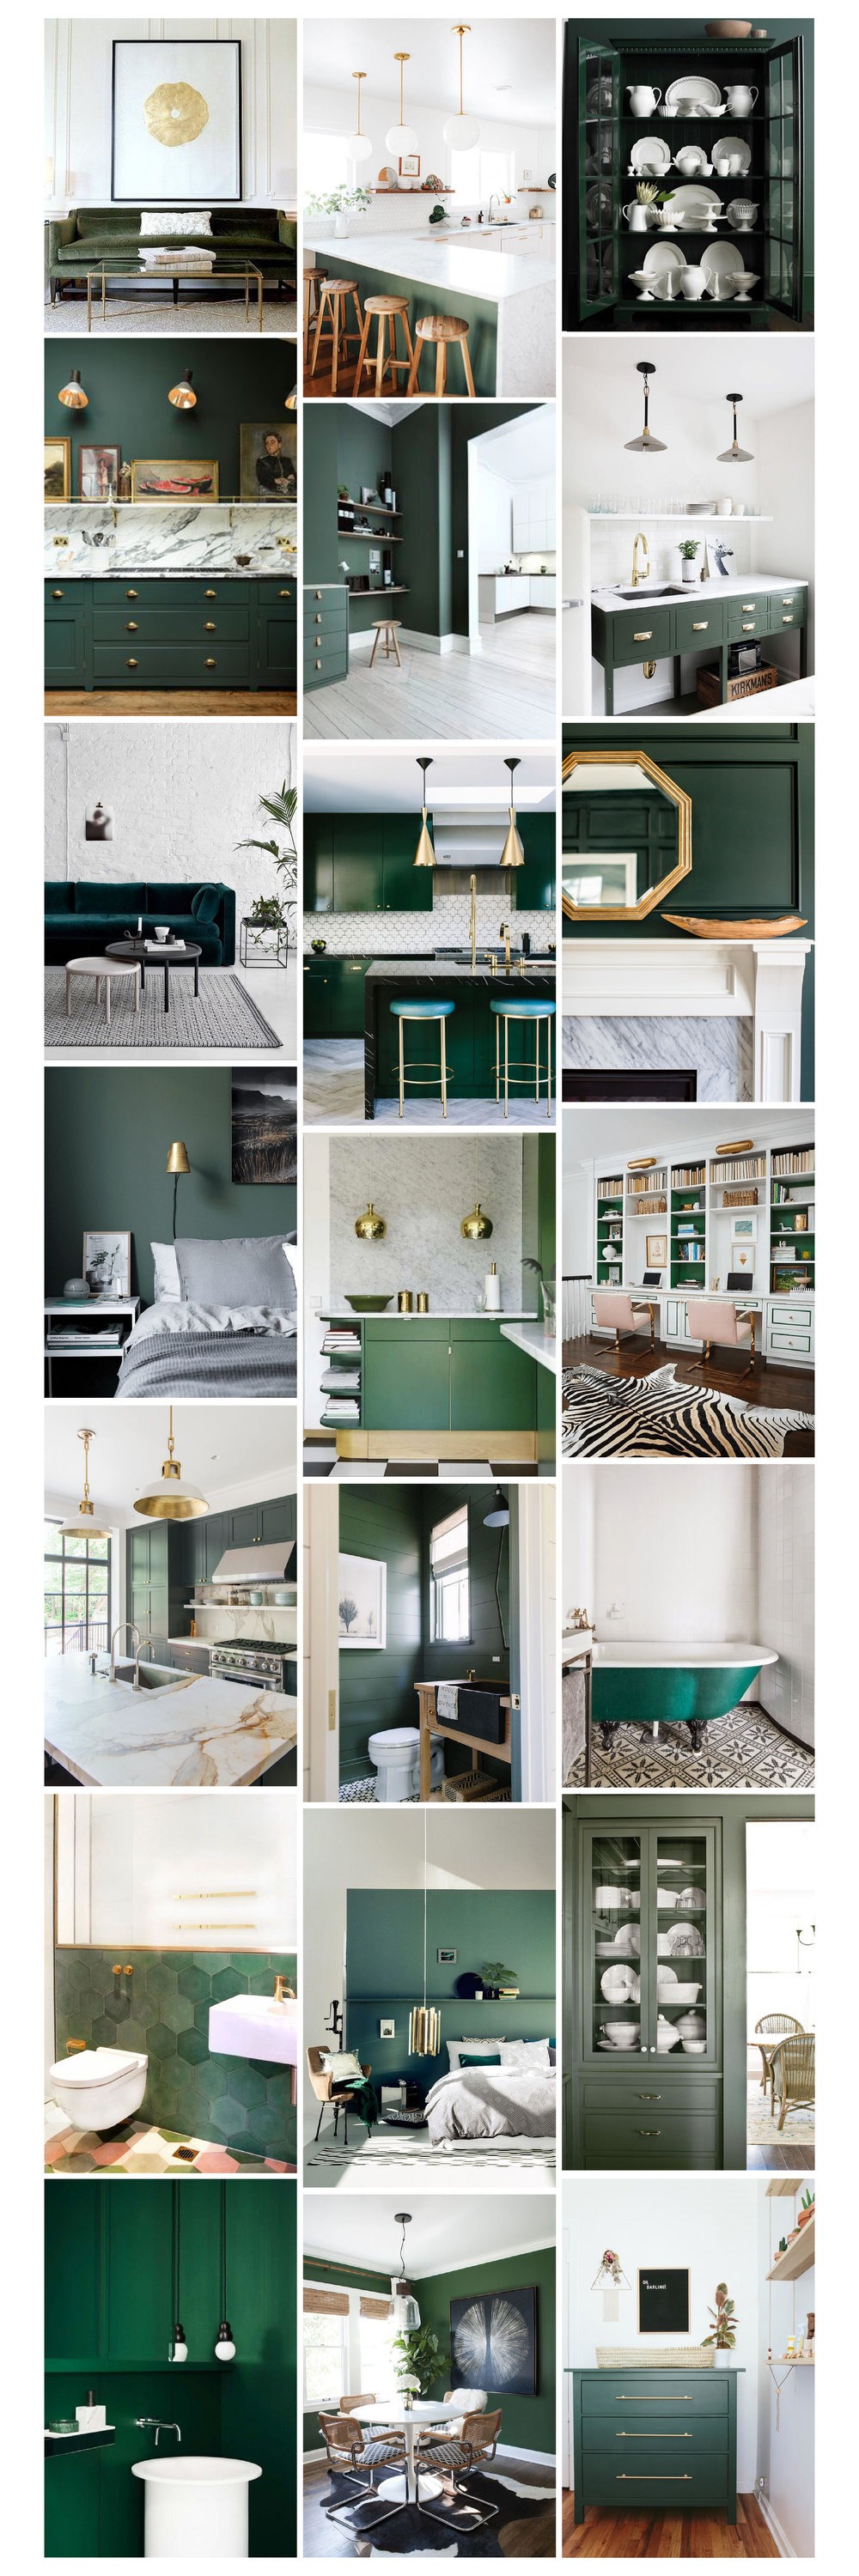 kris and kate studio_green interior inspiration images